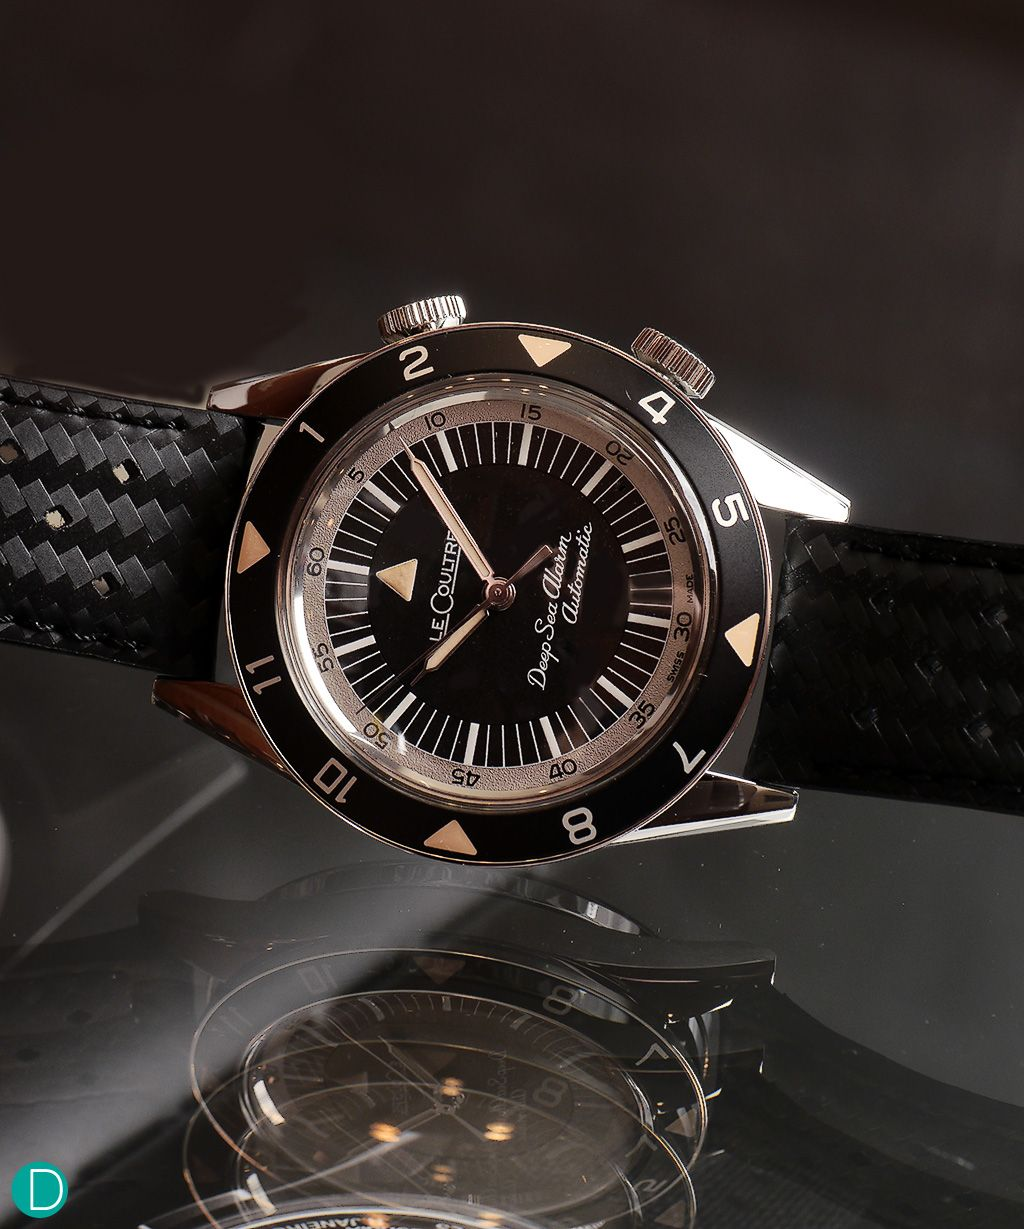 The Jlc Tribute To Deep Sea Alarm Watches Horology Omega Watch